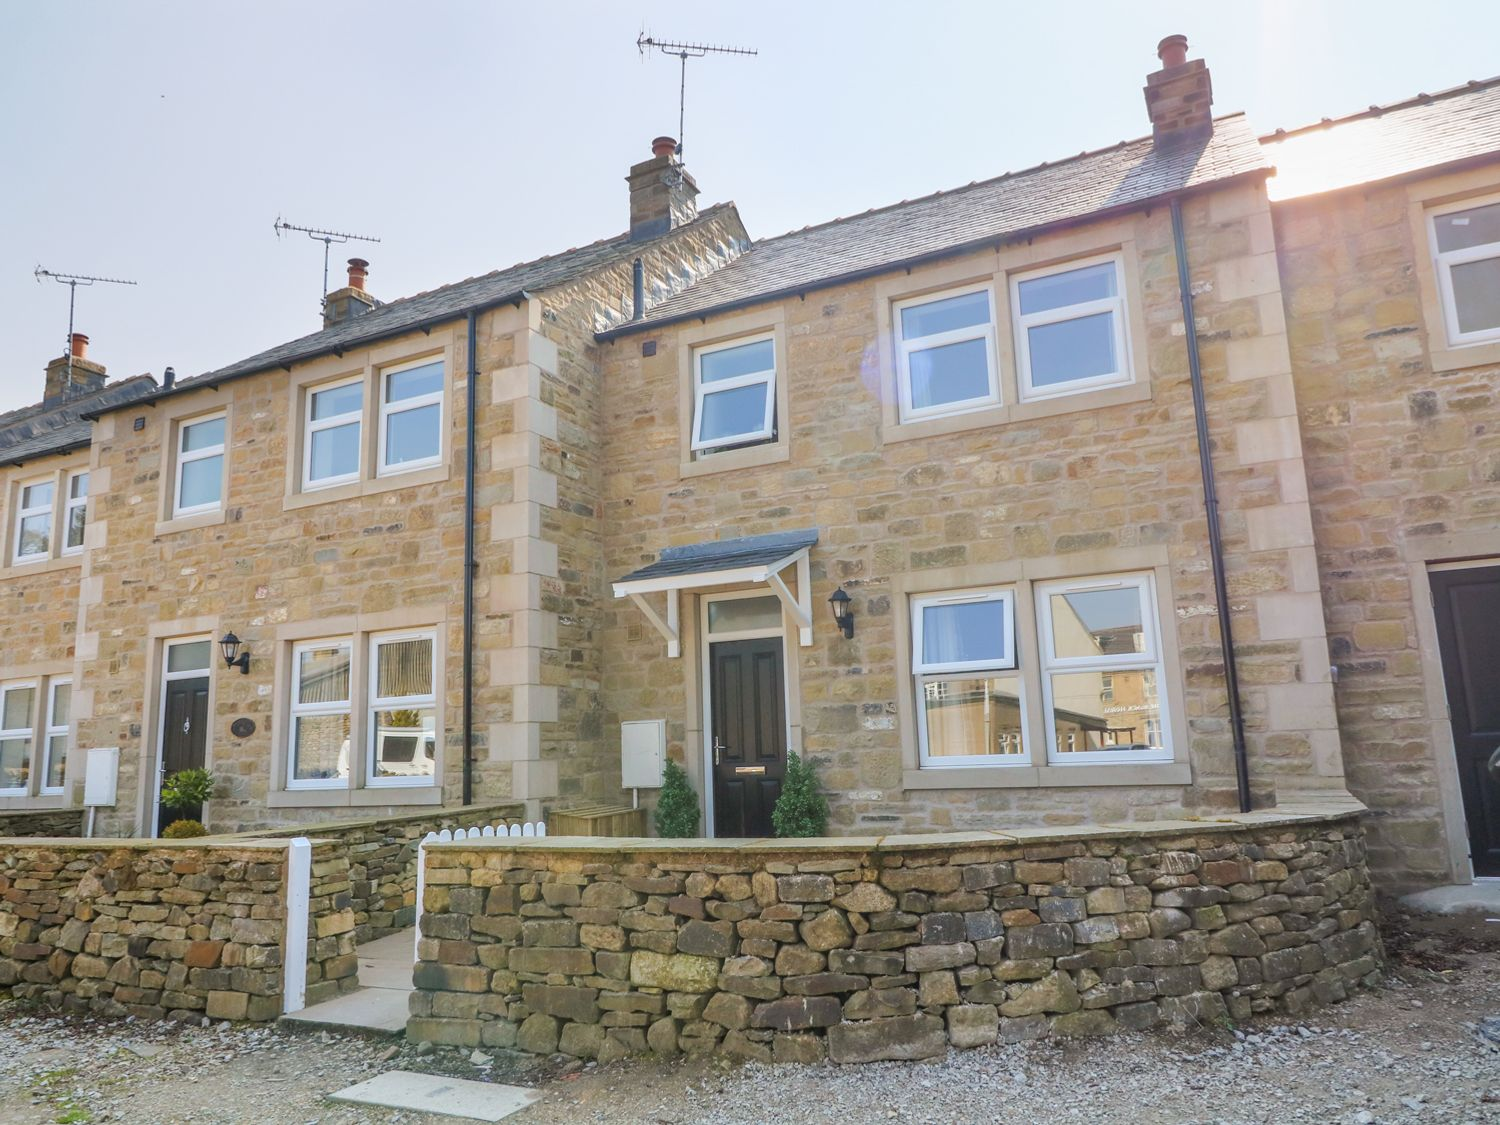 1 St. Aidans Court - Yorkshire Dales - 977861 - photo 1